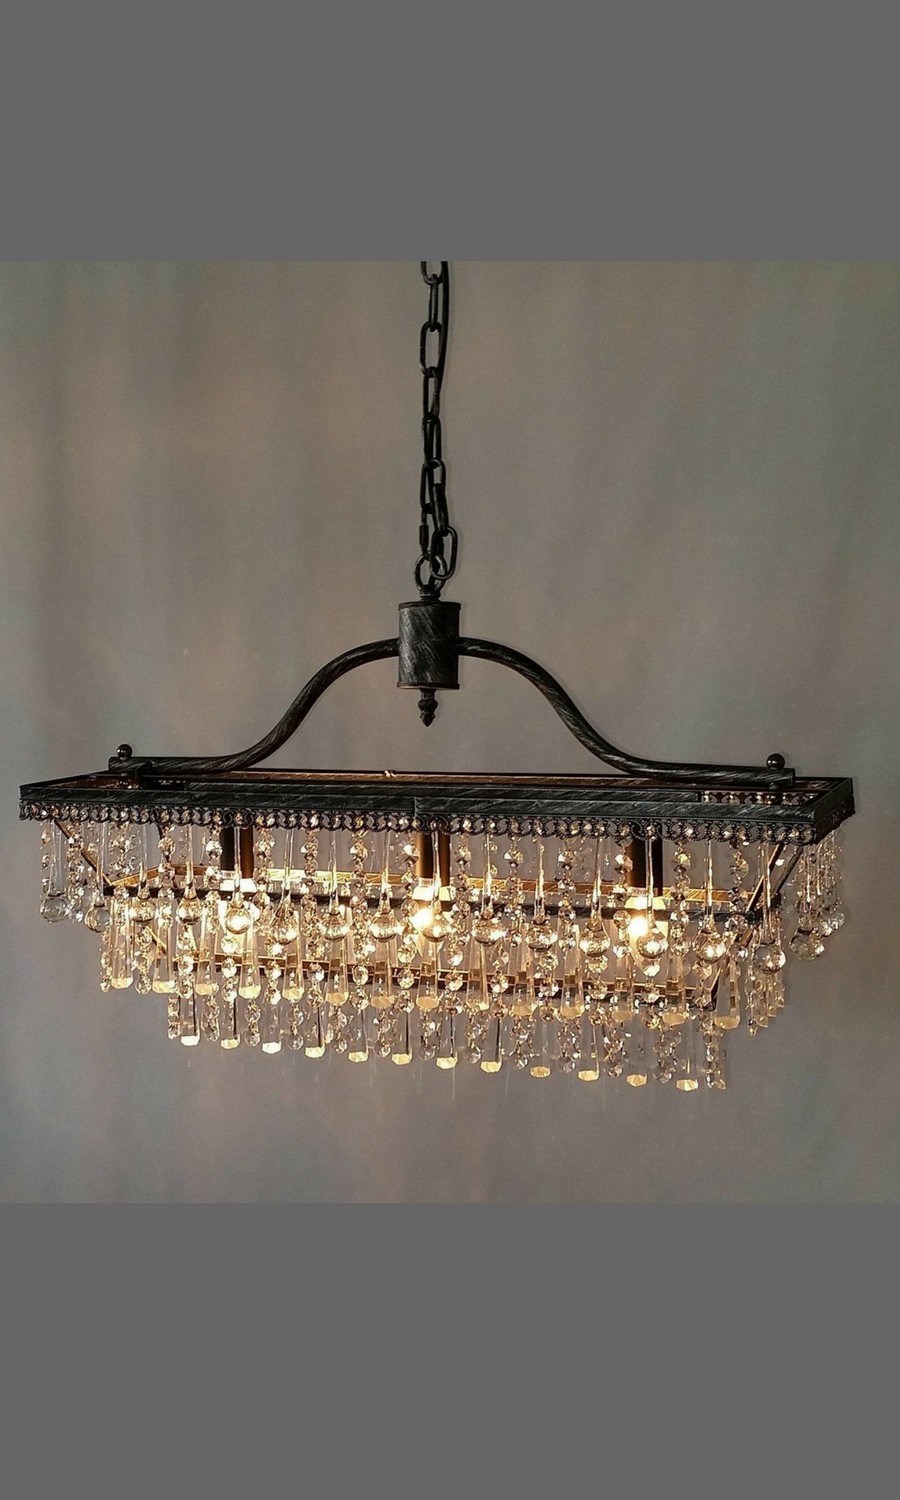 A Massive Collection Of All Kind Of Rustic Lighting Fixtures All Shapes Textures Sizes And Best Prices From Amazon Save Time And Money Find It All In